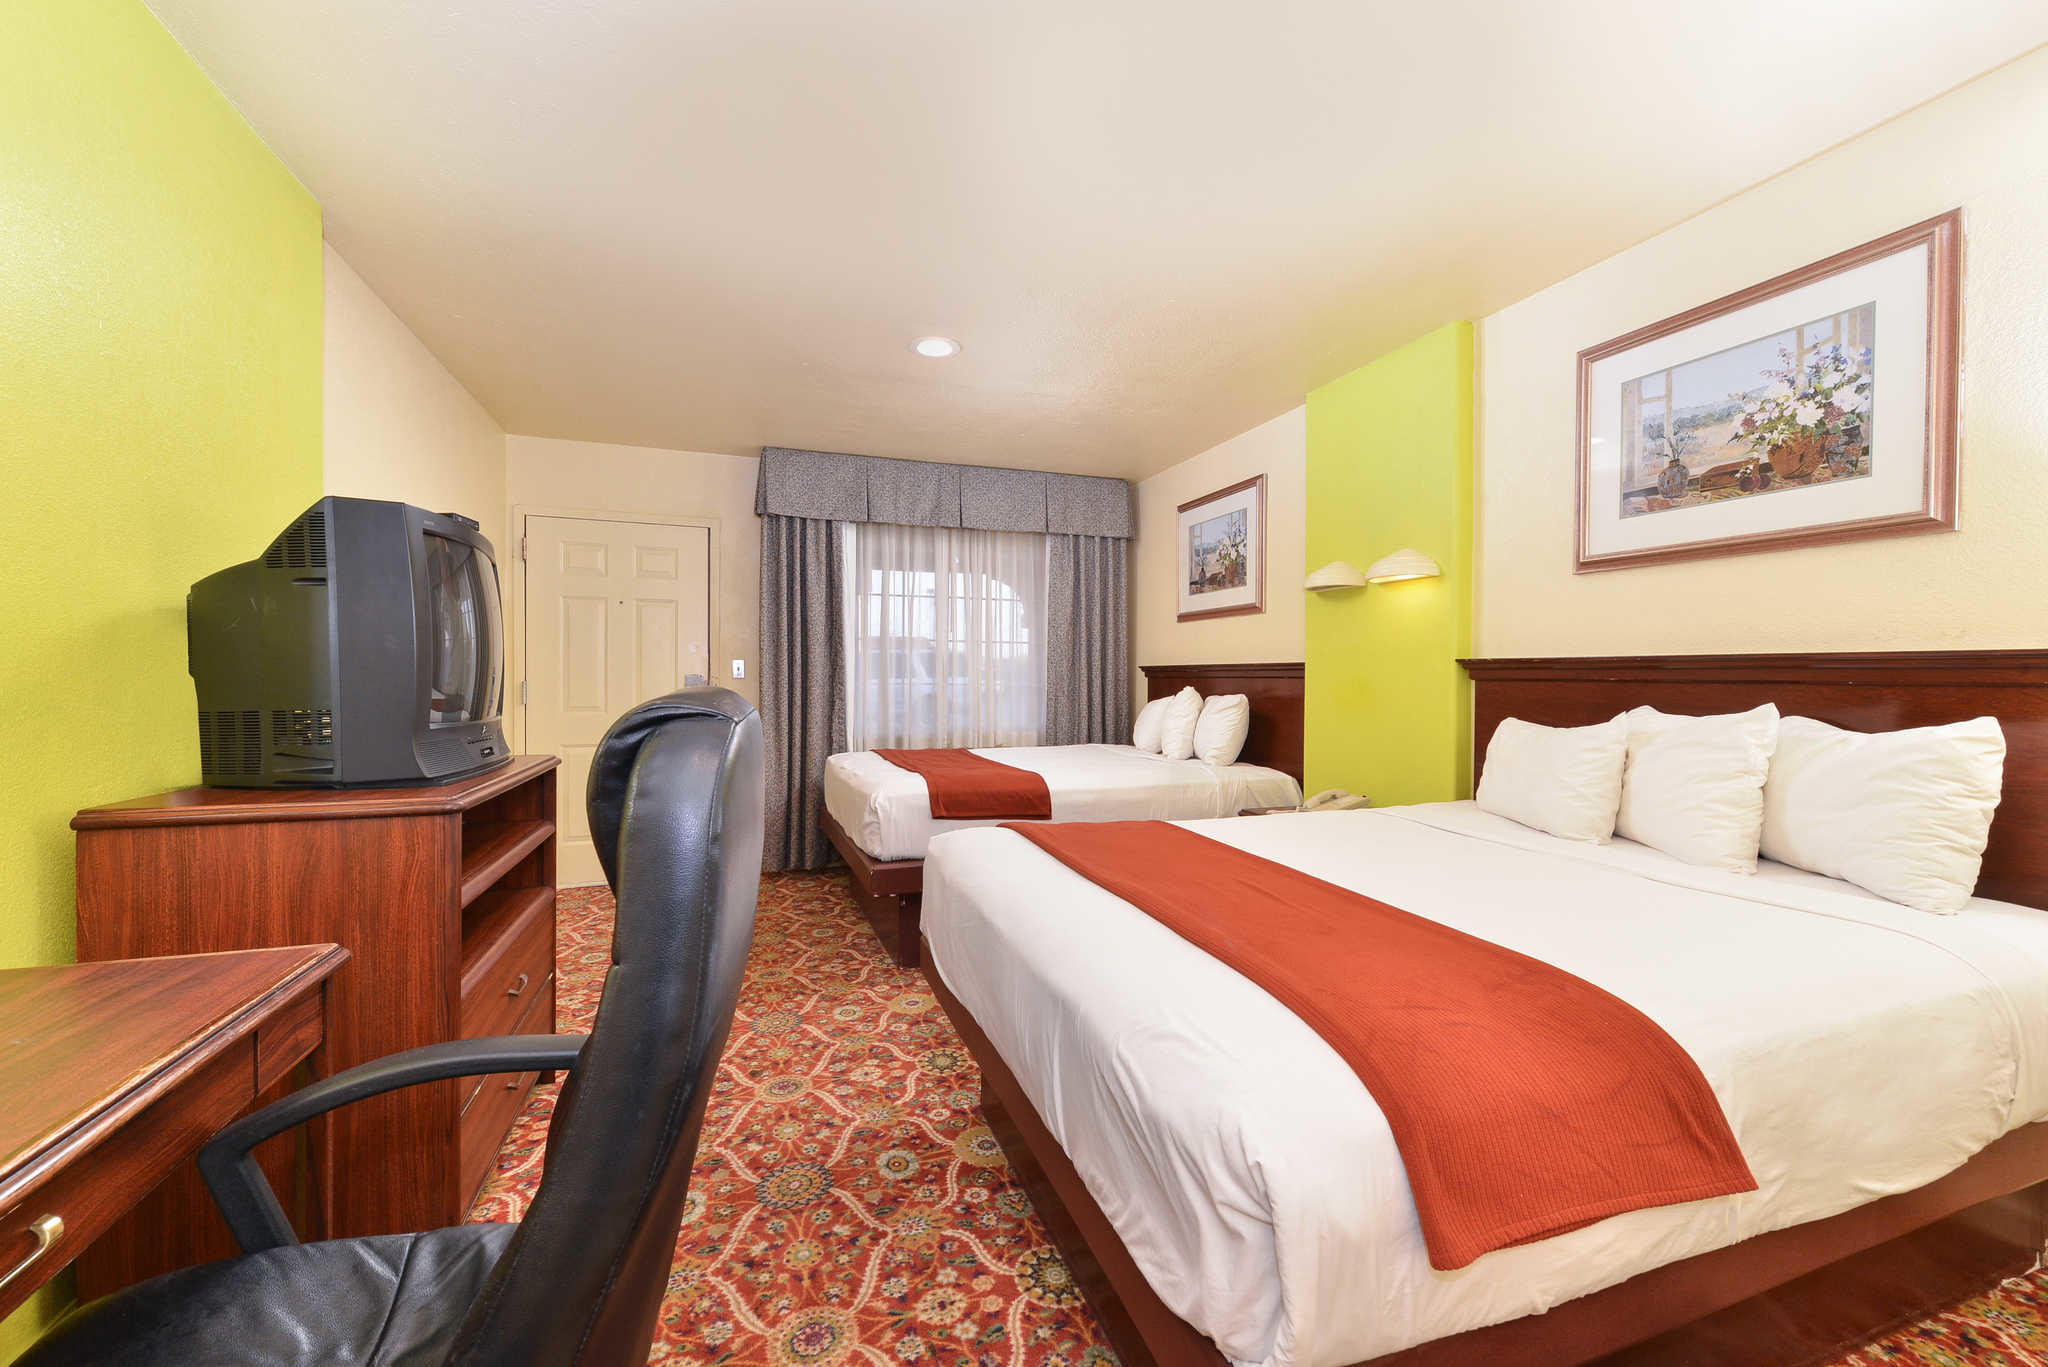 Hotel Rooms In Modesto Ca